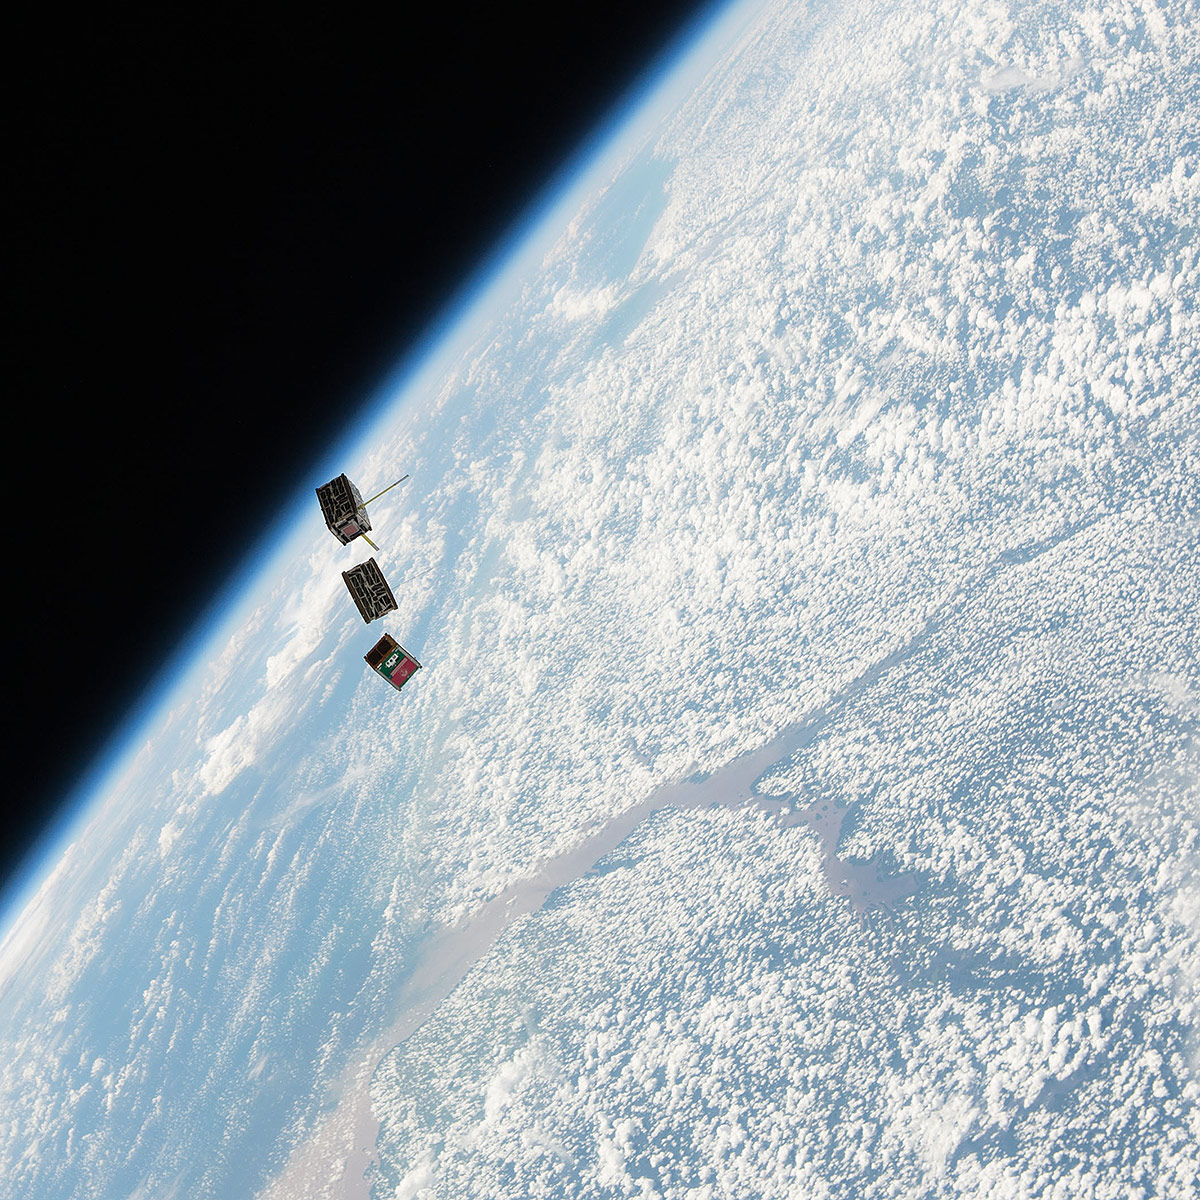 stmsat 1 deployed over earth